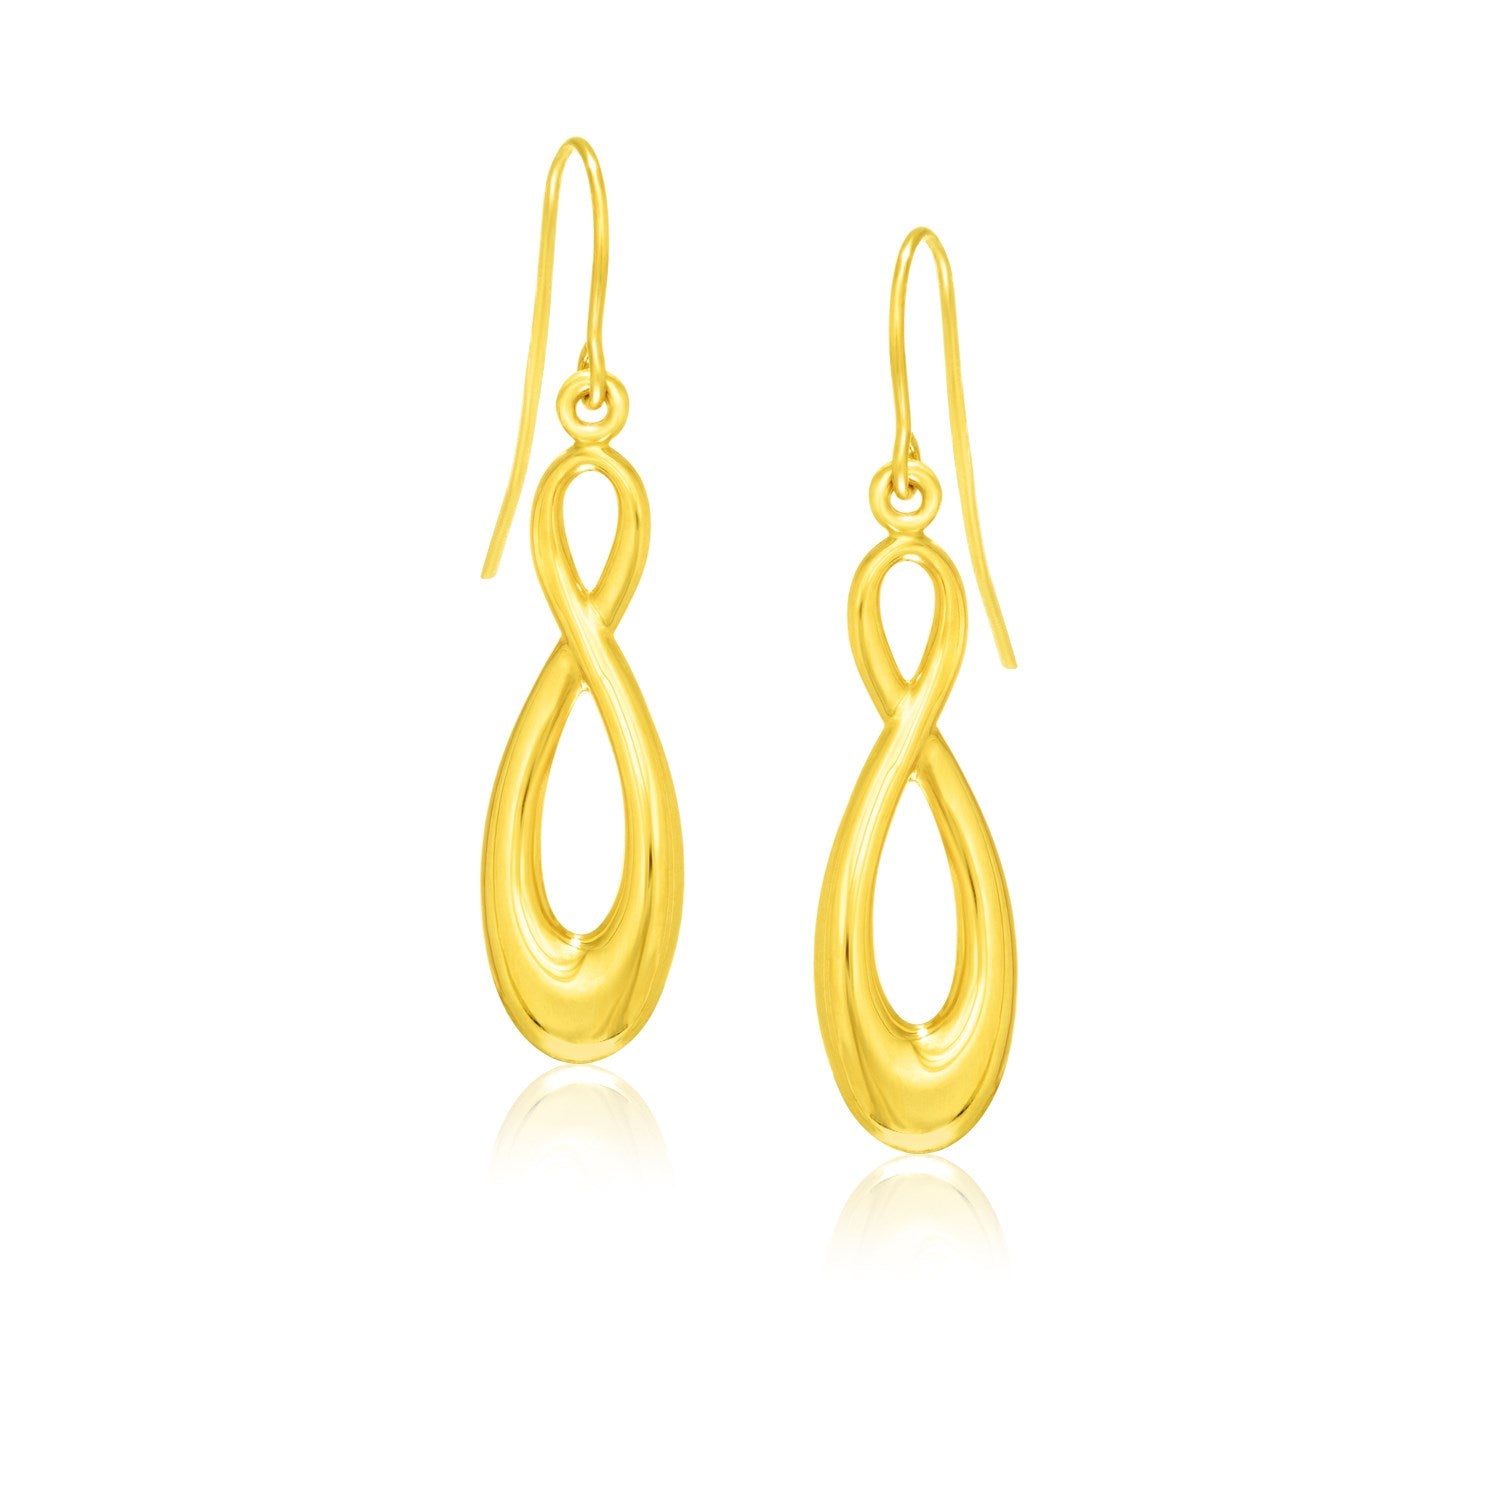 14K Yellow Gold Polished Earrings in Infinity Design